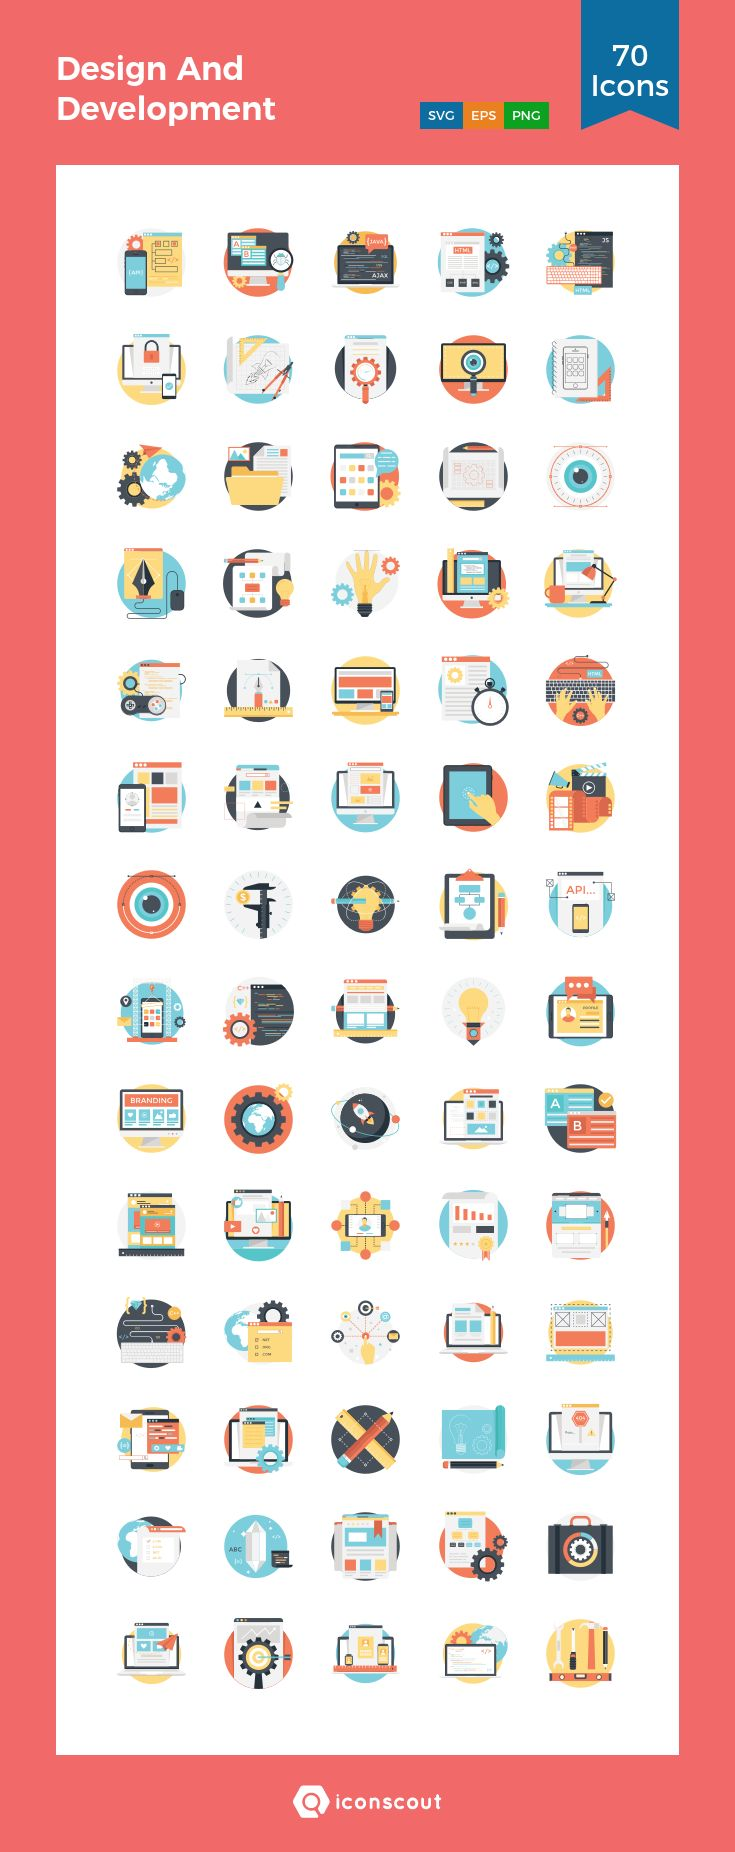 Design And Development  Icon Pack - 70 Flat Icons